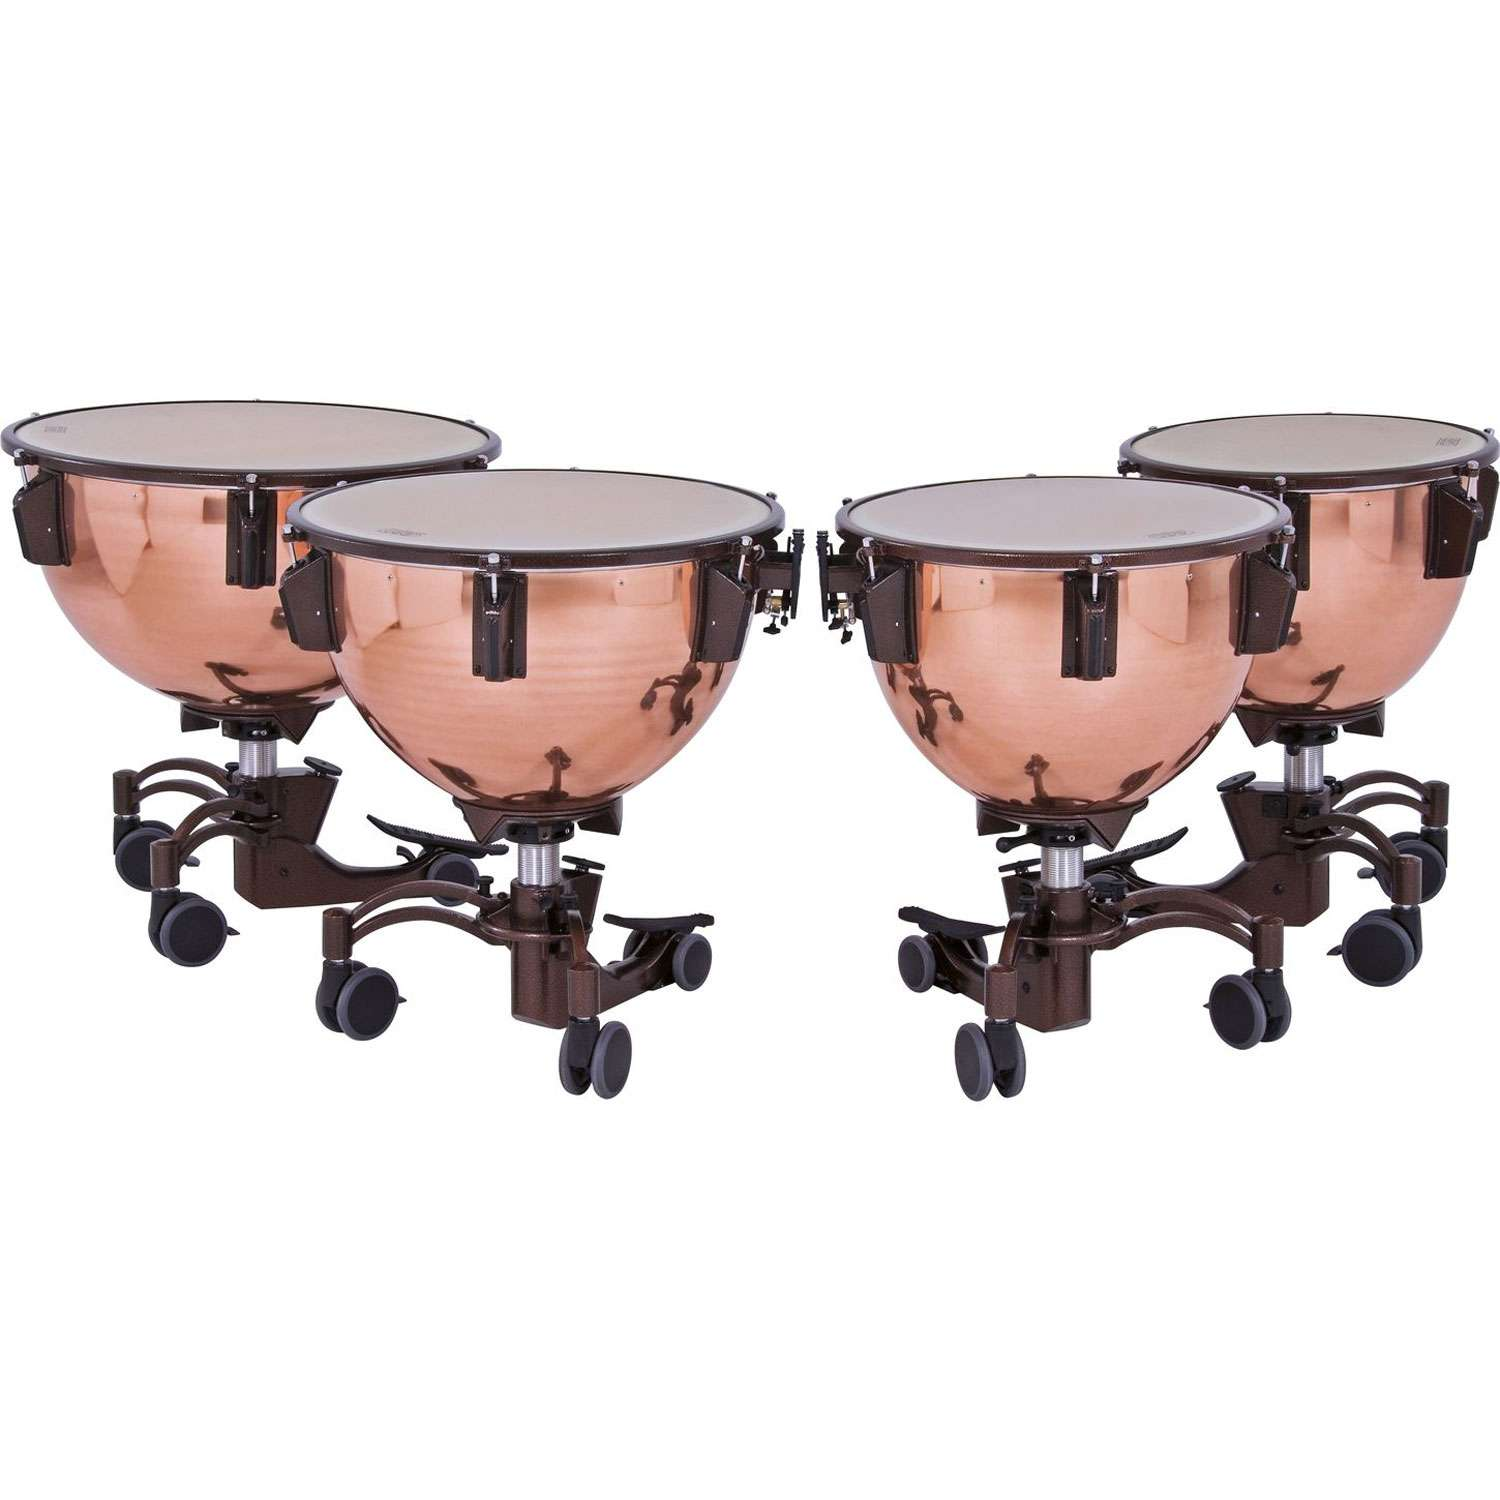 "Adams 23/26/29/32"" Revolution Polished Copper Timpani"